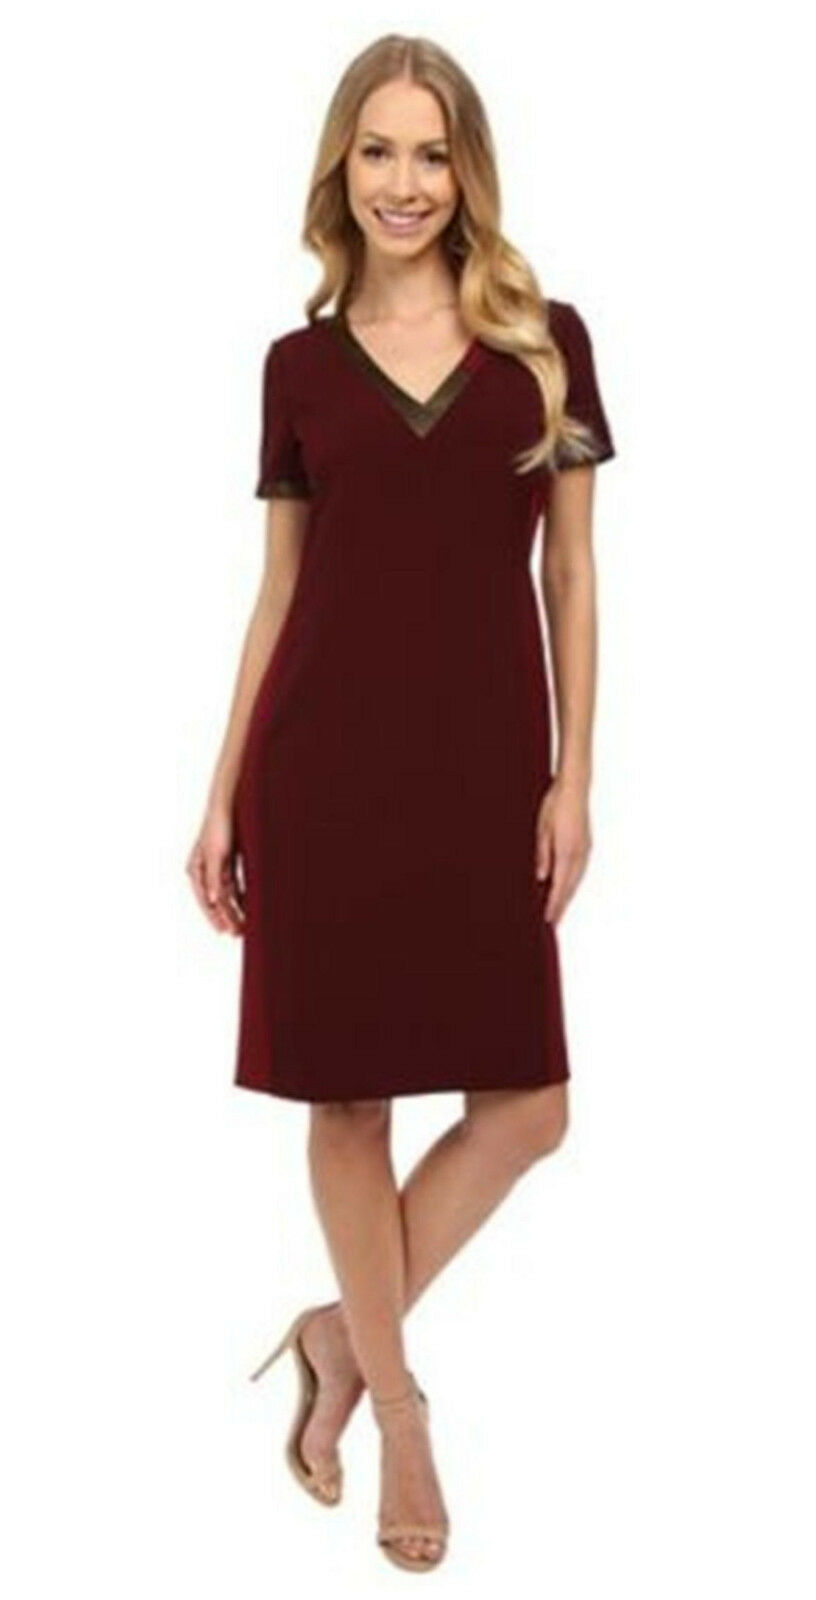 Anne Klein Women's V-neck Lined Sleeveless Red Wine Dress 10 $129